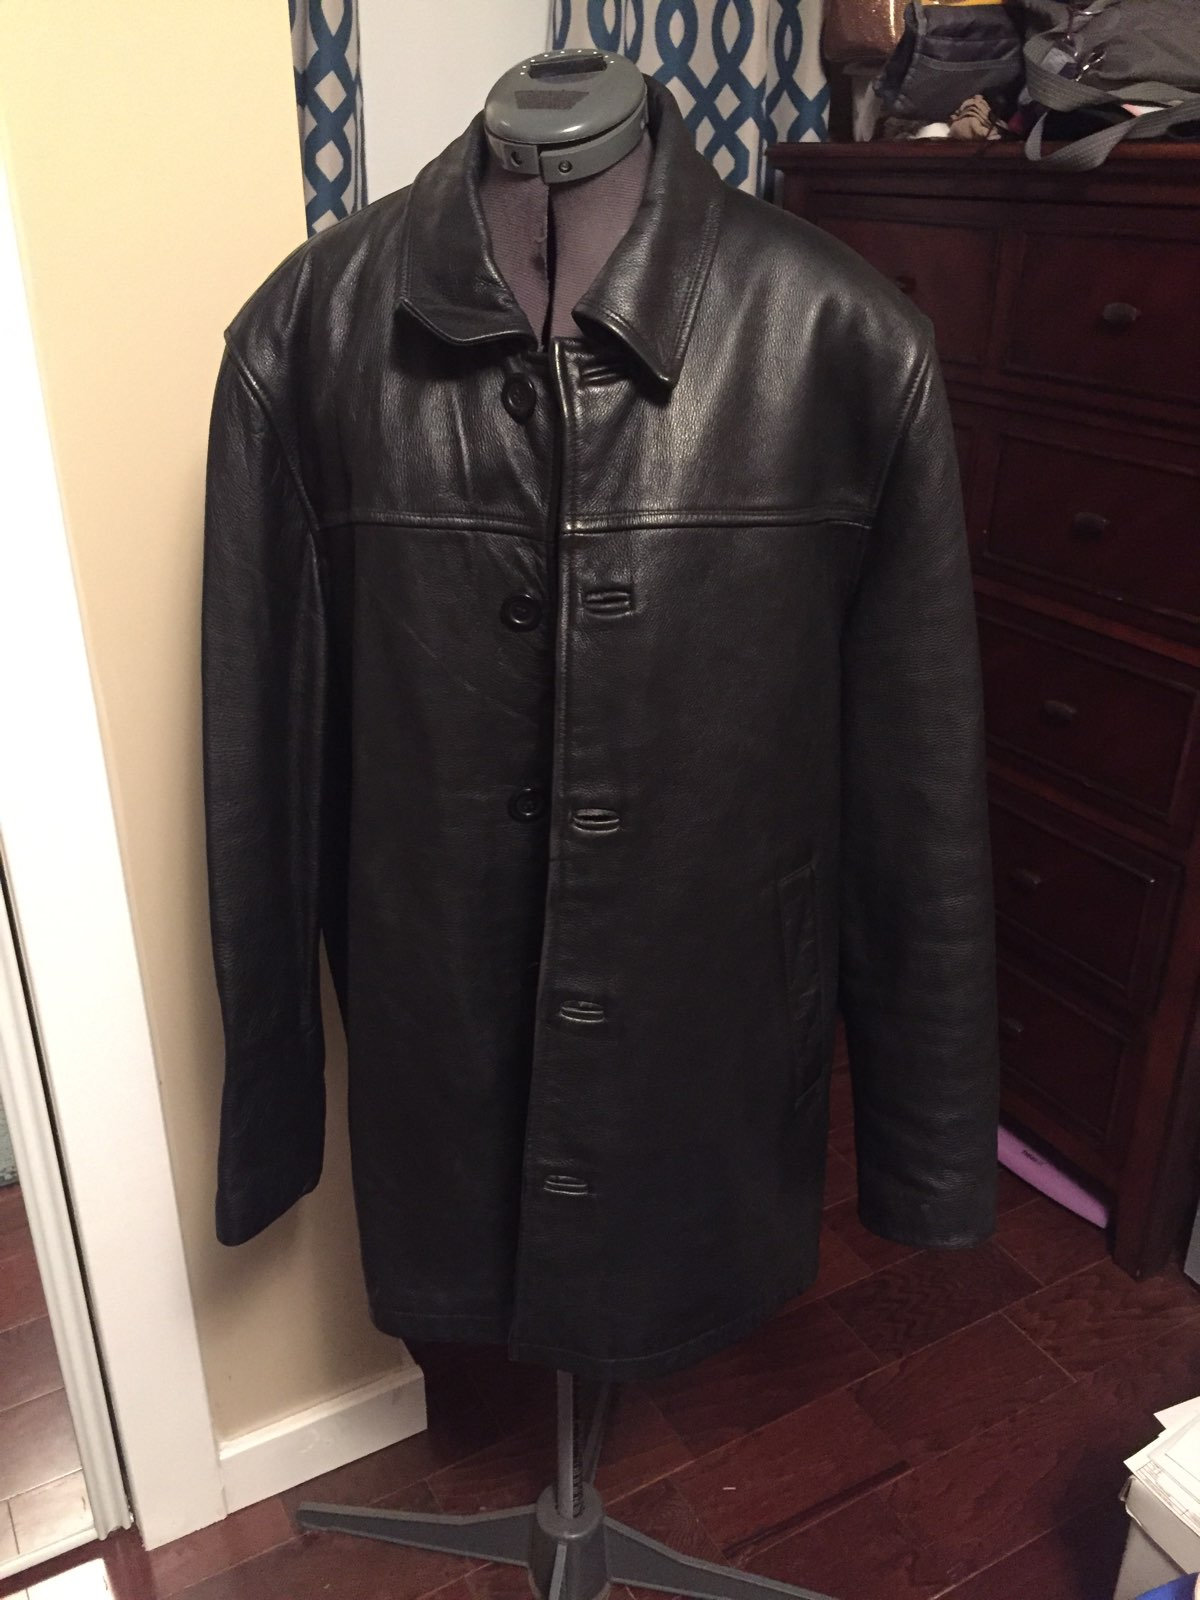 Men's Leather Limited Car Coat Lined - Mercari: BUY & SELL THINGS ...